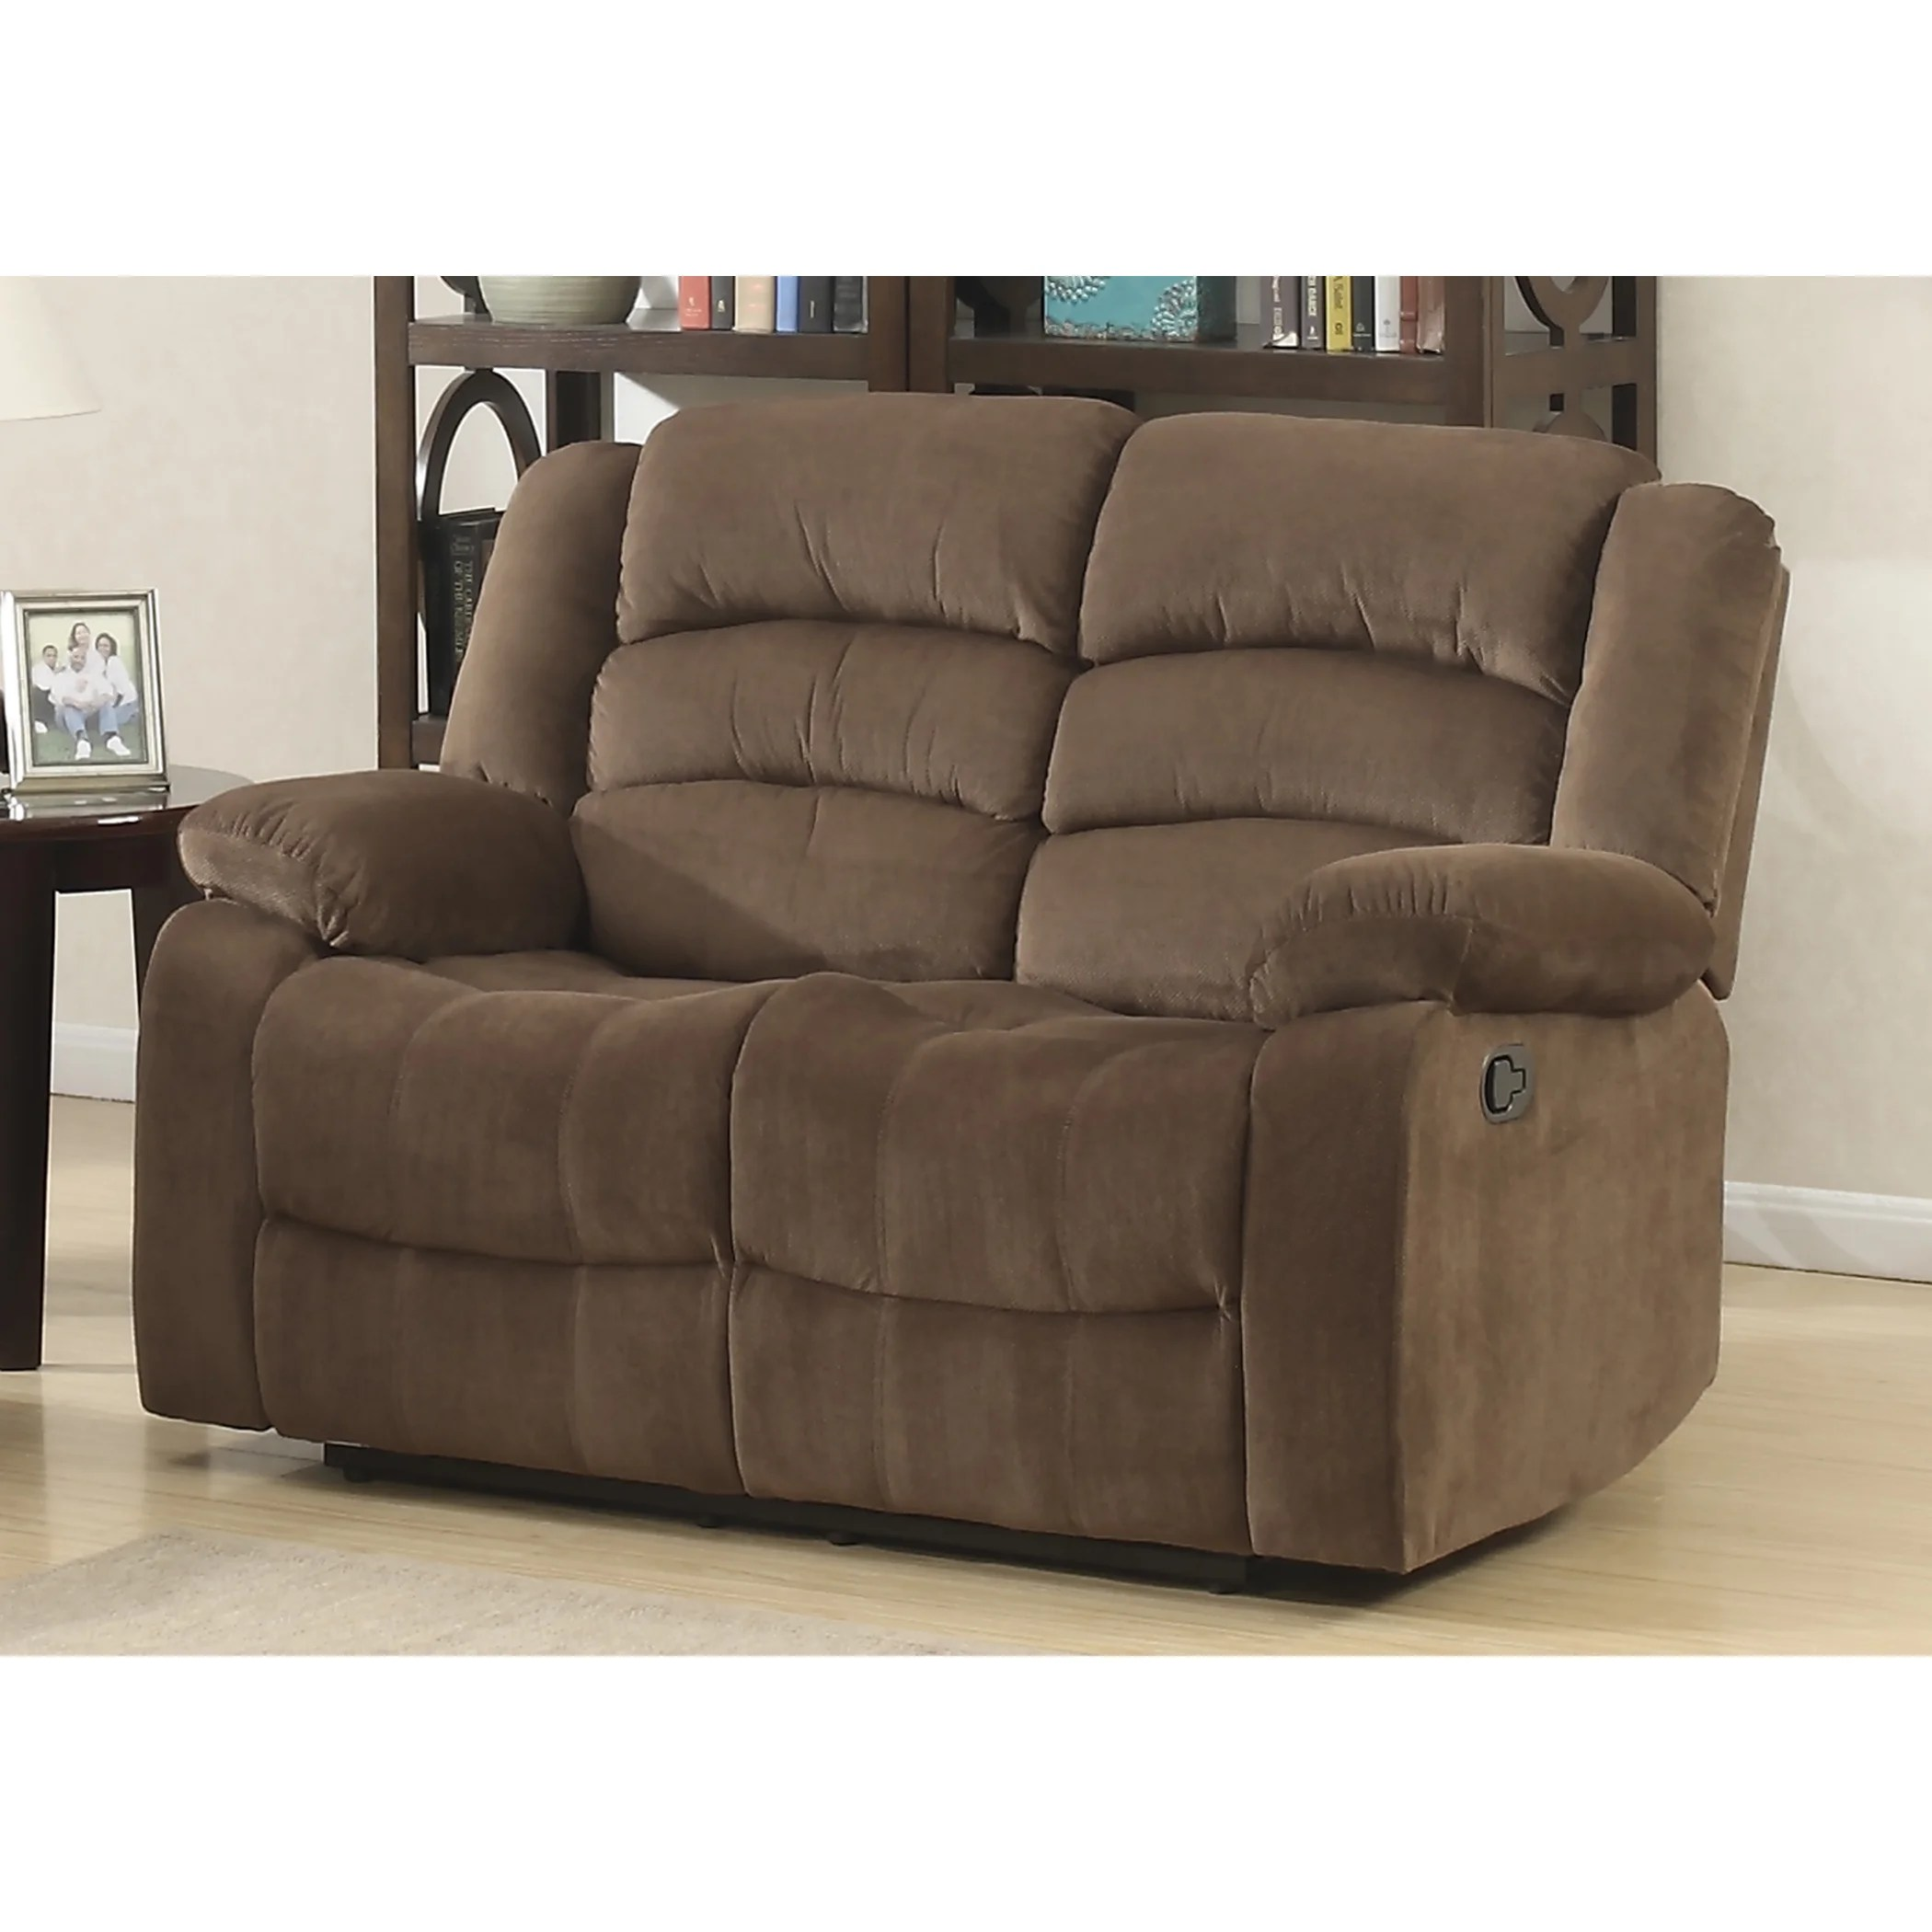 Double Recliner Chair Details About Double Recliner Chair Dual Reclining Loveseat Polyester Soft Brown Comfy Tv Room